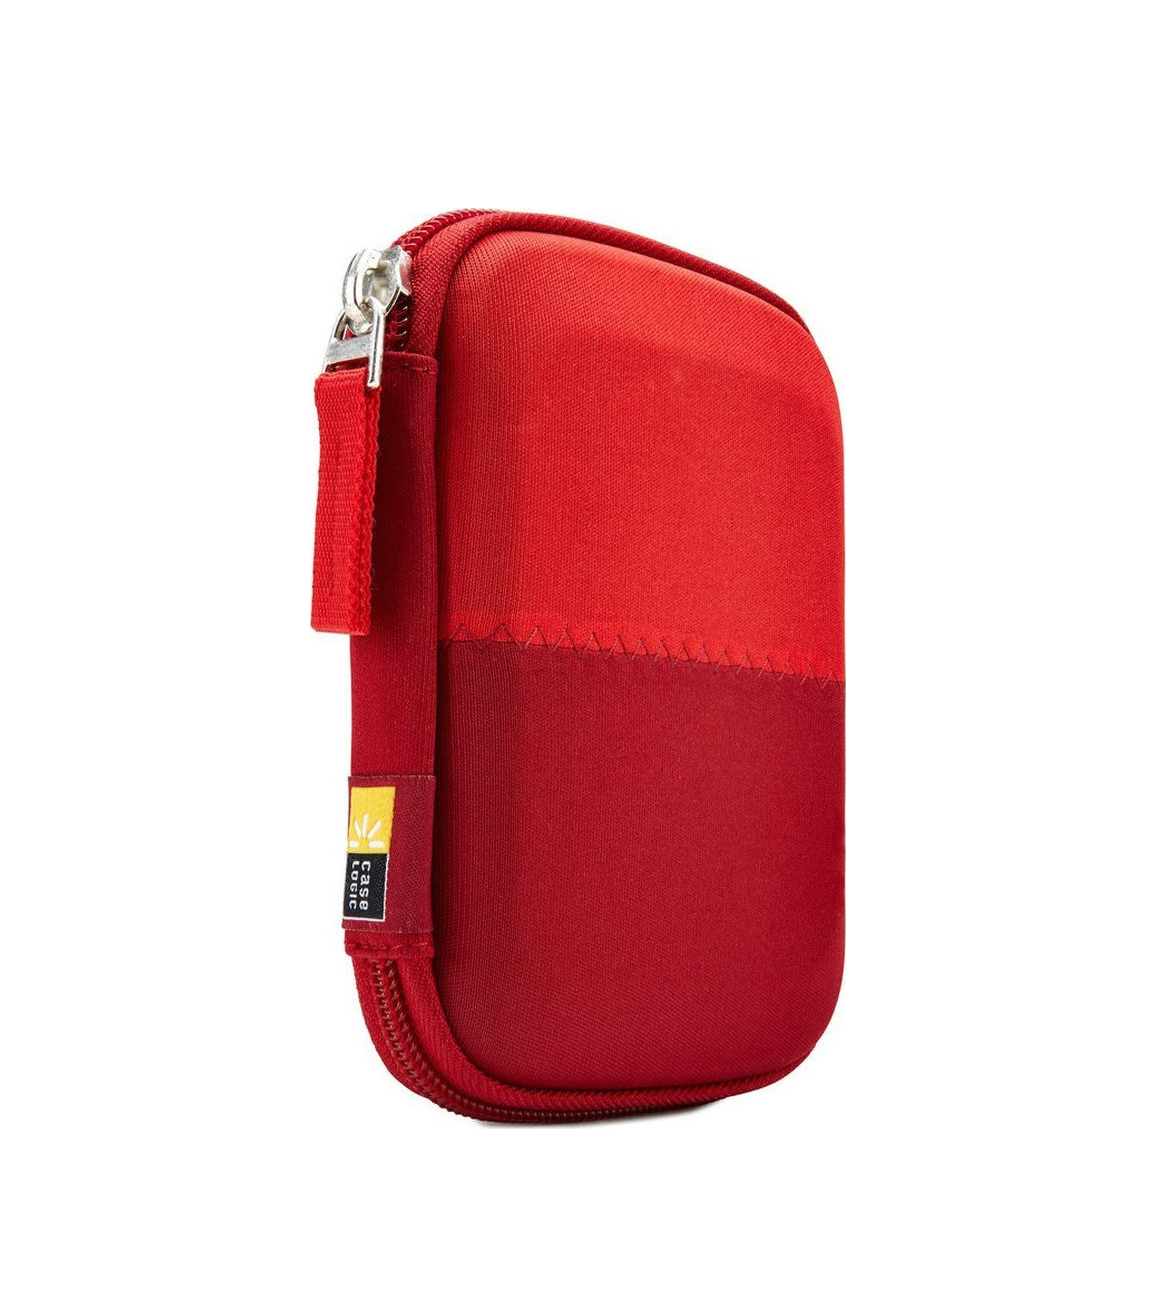 "Case Logic Portable Hard Drive Case Red 2.5"" HDC11R"